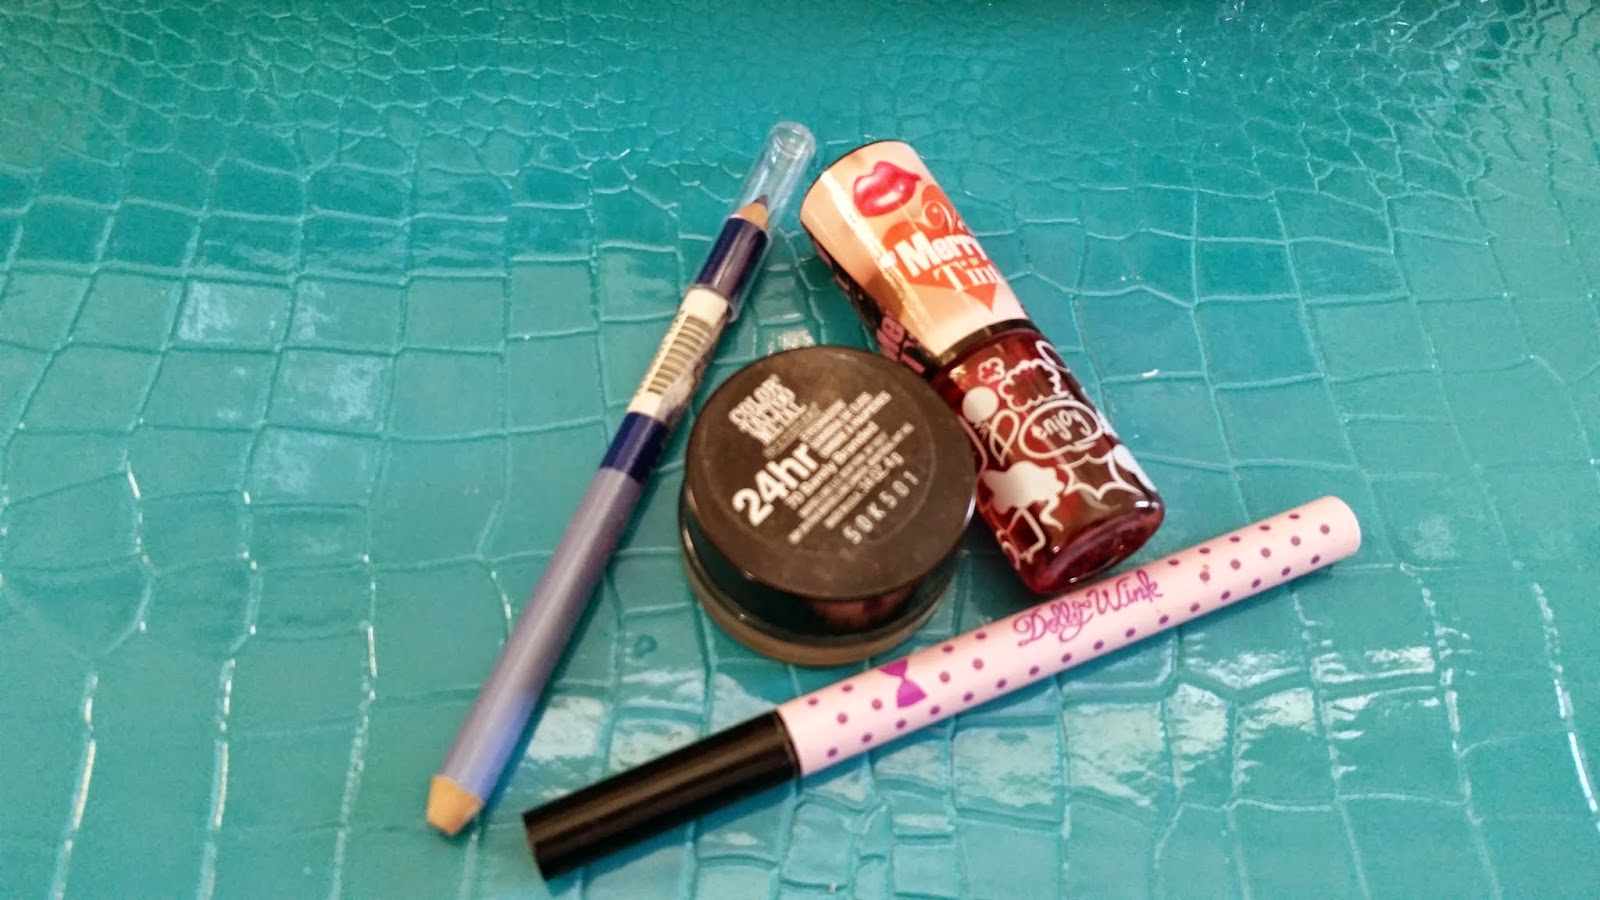 Dolly Wink liquid liner, YET gel-jelly lip tint, Maybelline 24 hour cream eyeshadow, random blue eyeliner